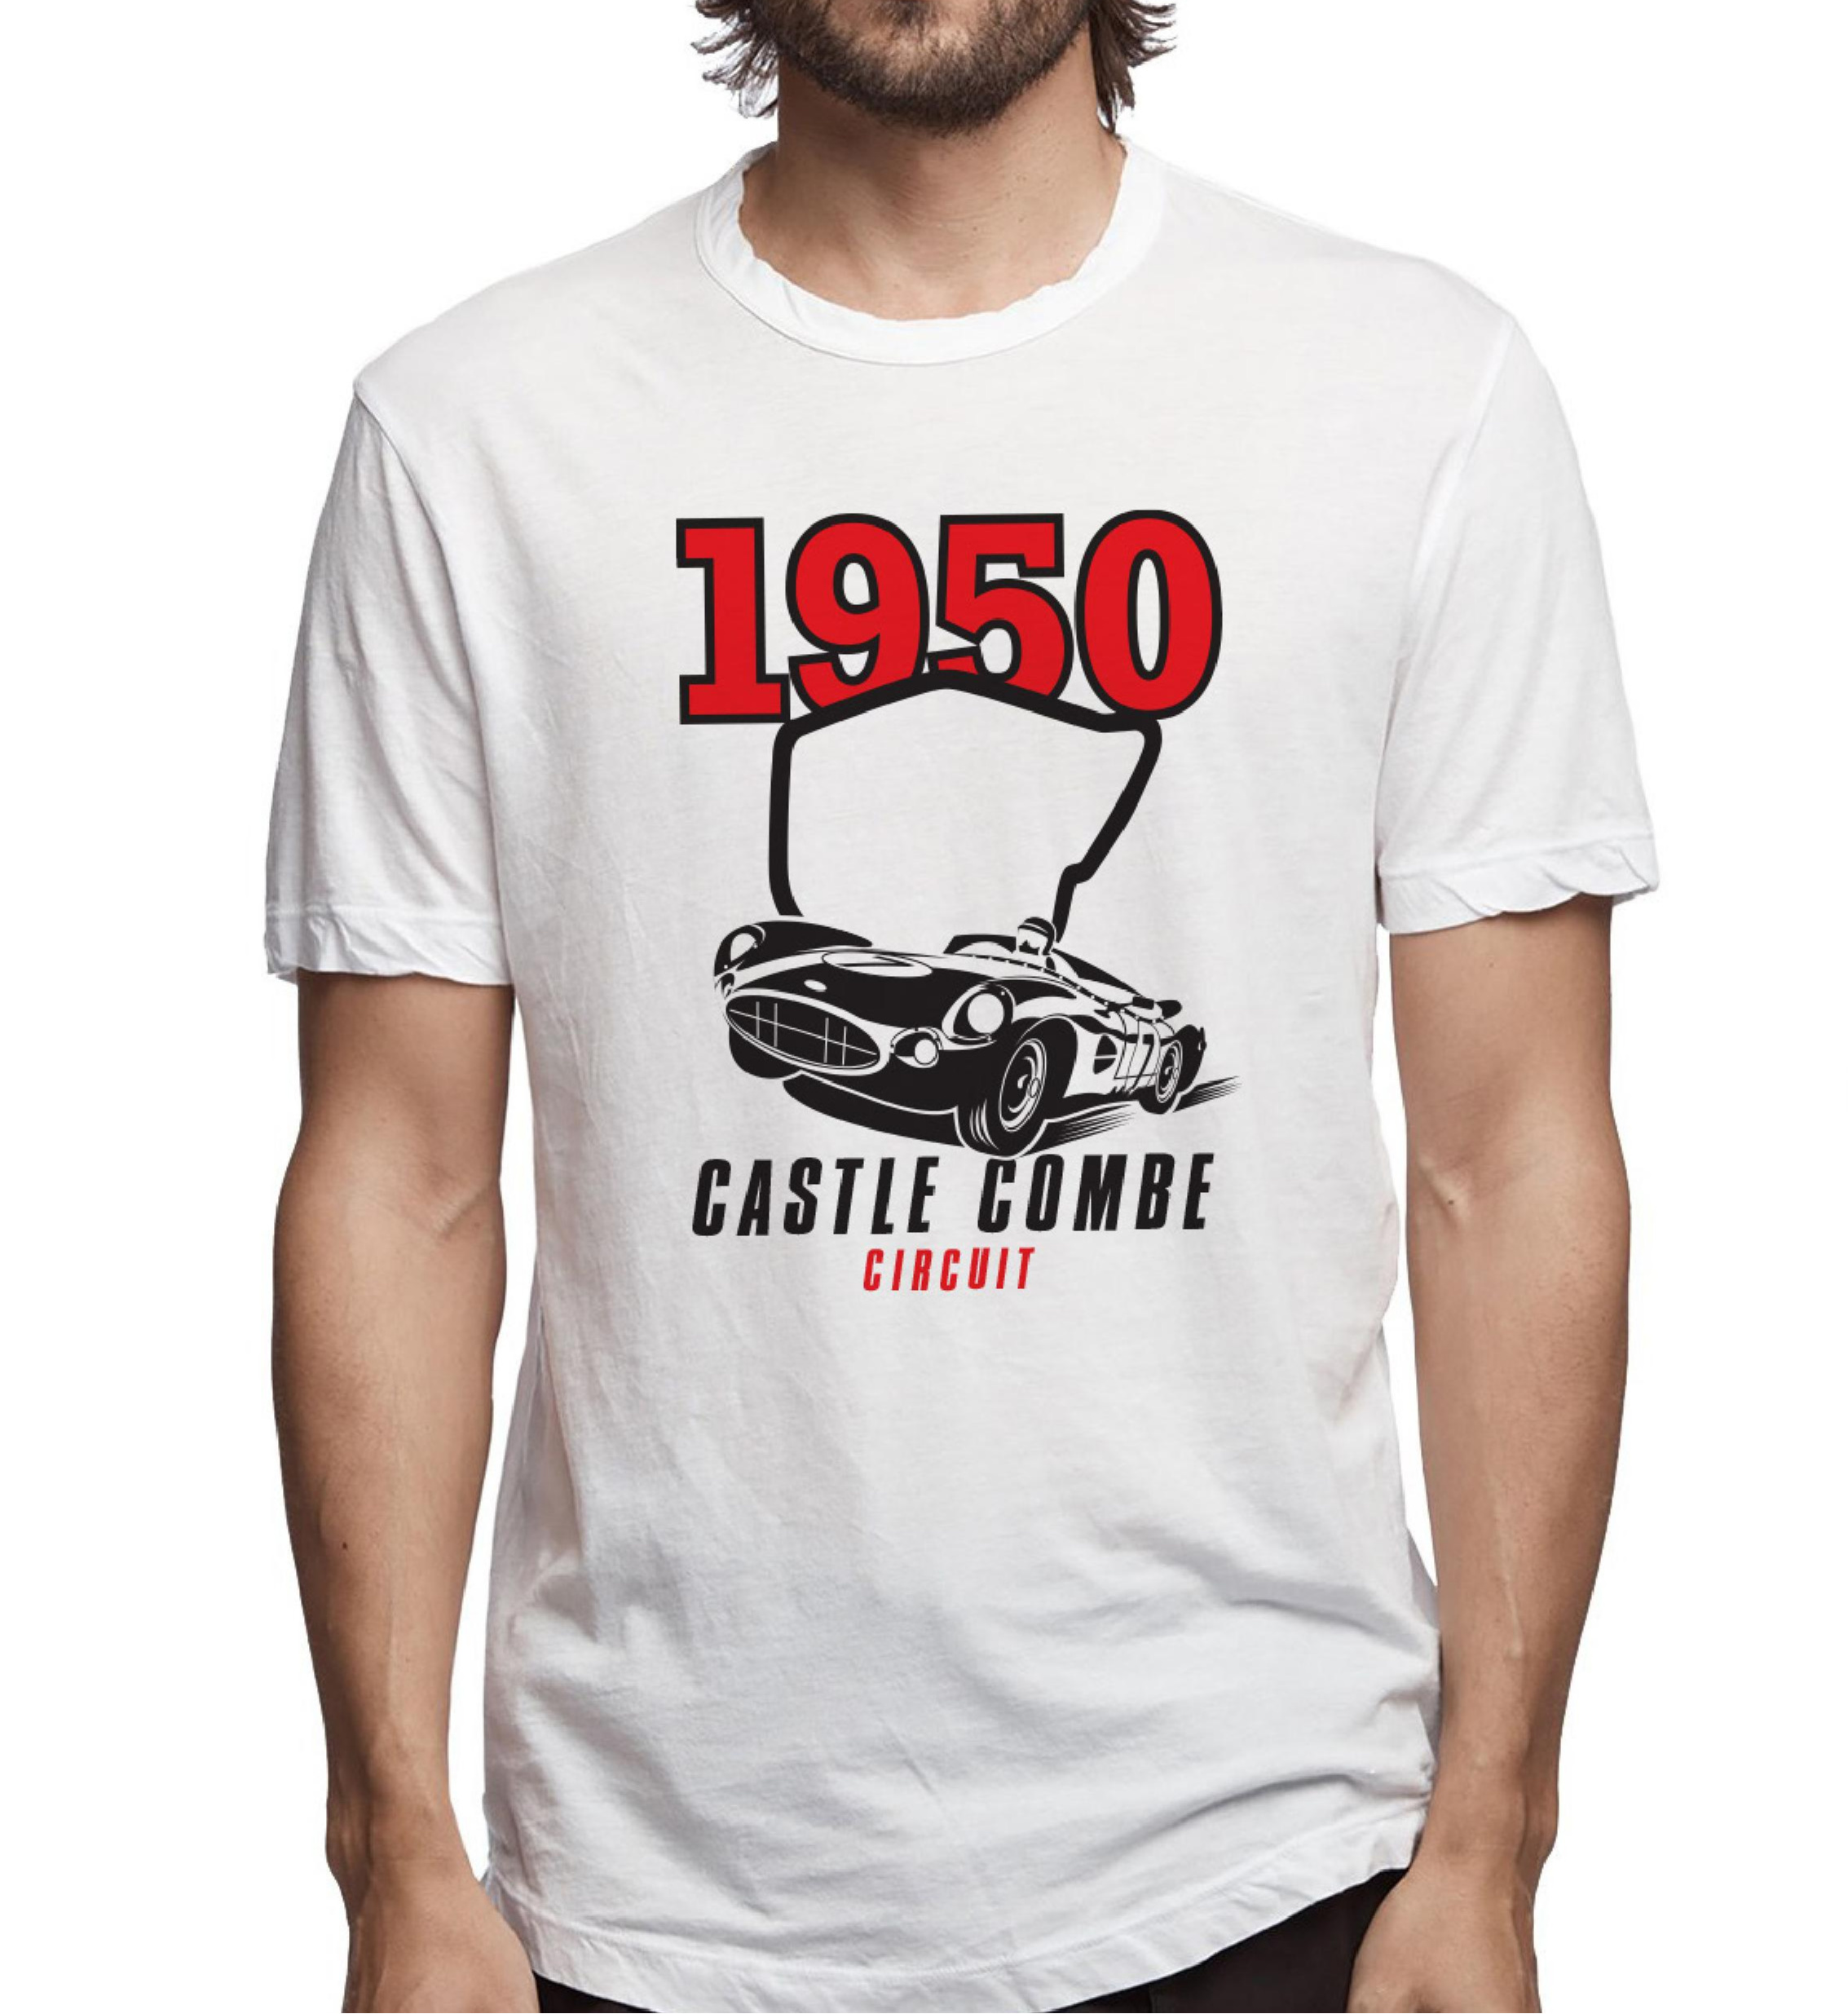 The 1950 t-shirt